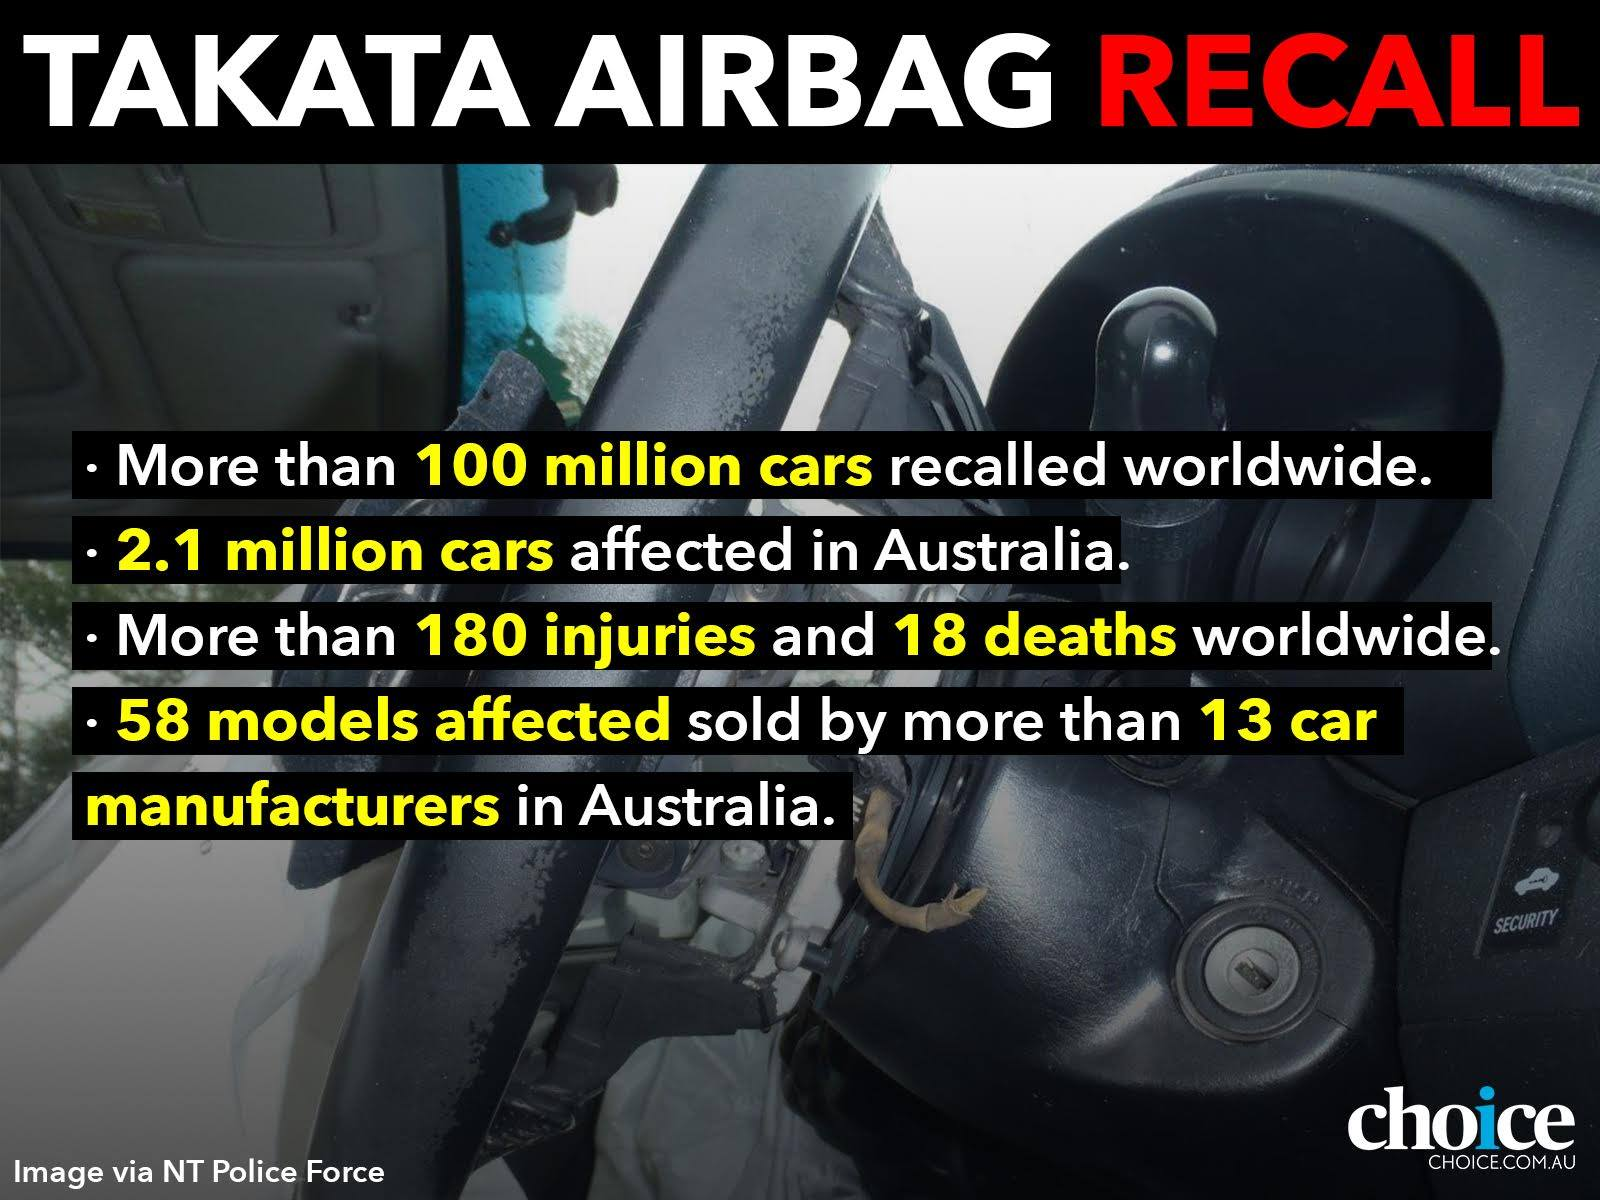 takata airbags recall transport community. Black Bedroom Furniture Sets. Home Design Ideas